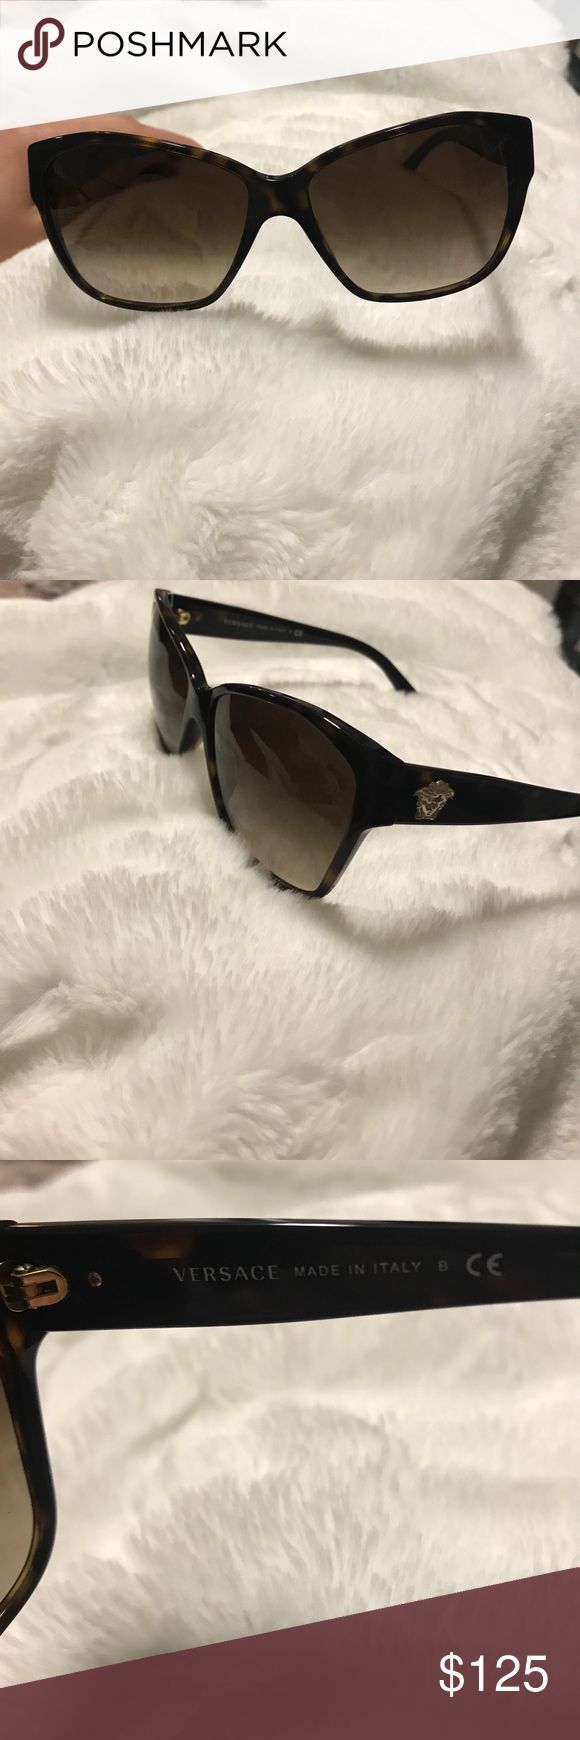 🚨SALE🚨uthentic Versace sunglasses Like new! Worn a handful of times. Versace Accessories Sunglasses